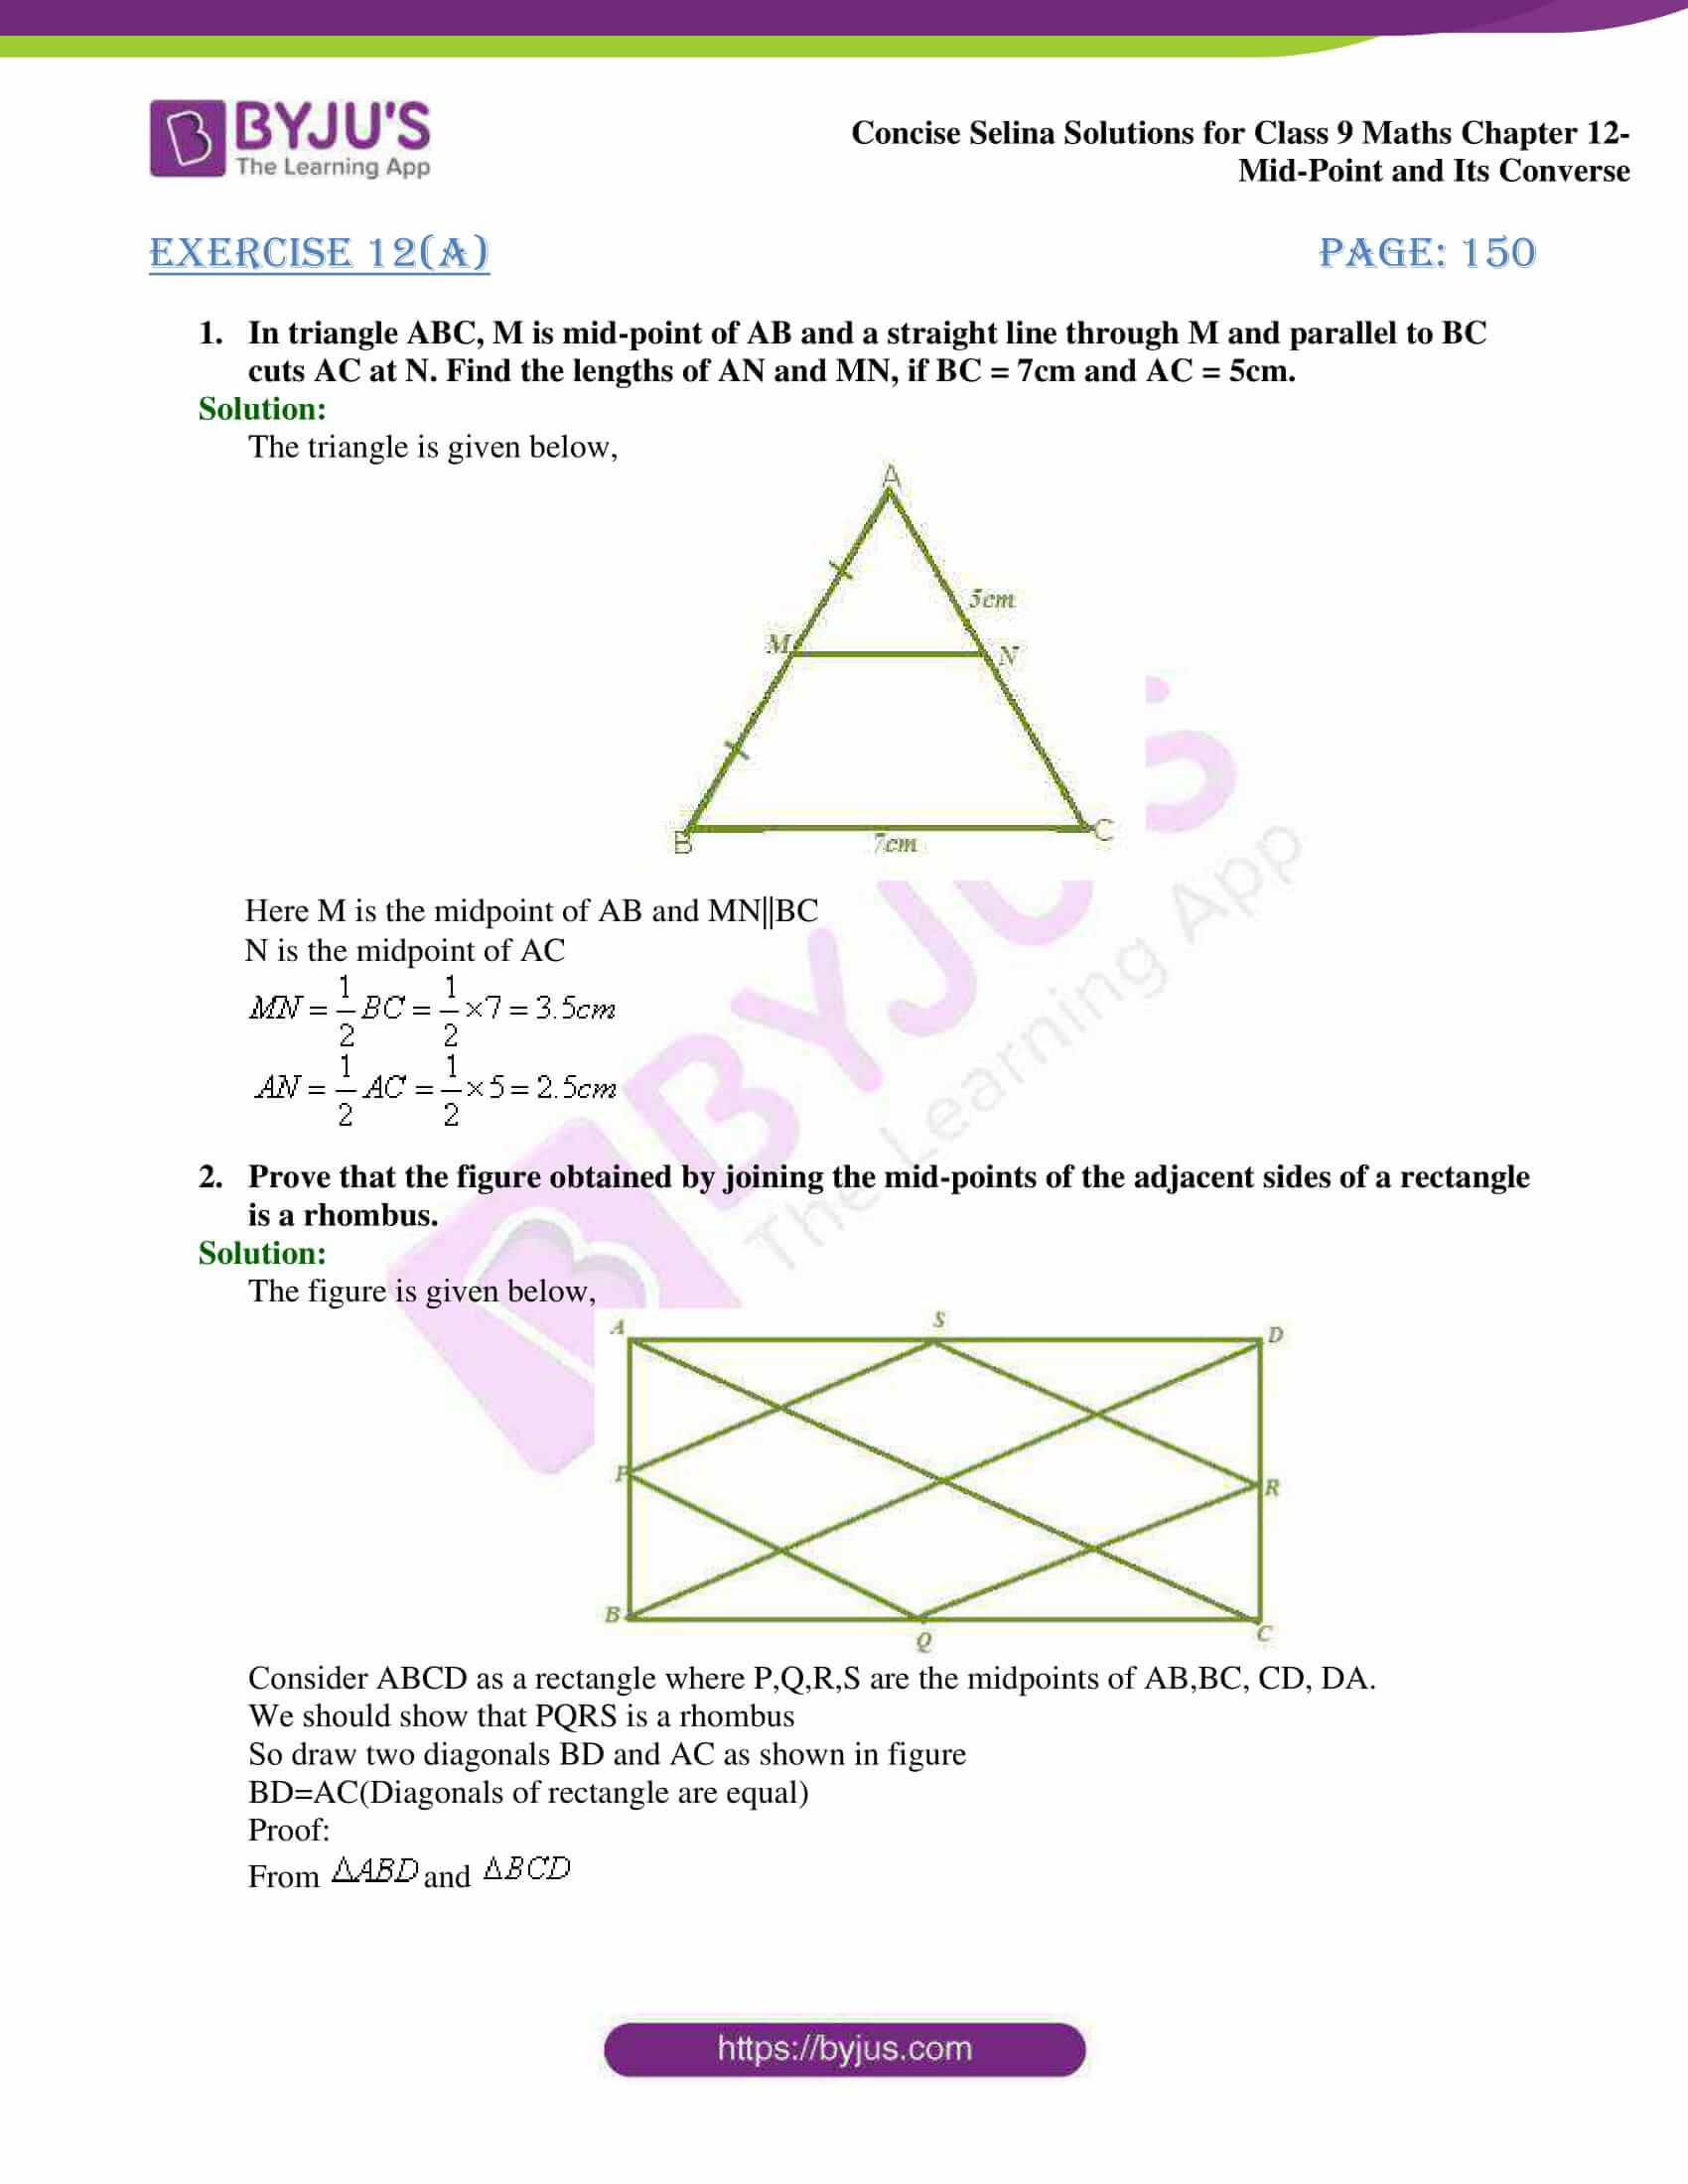 selina Solutions for Class 9 Maths Chapter 12 01